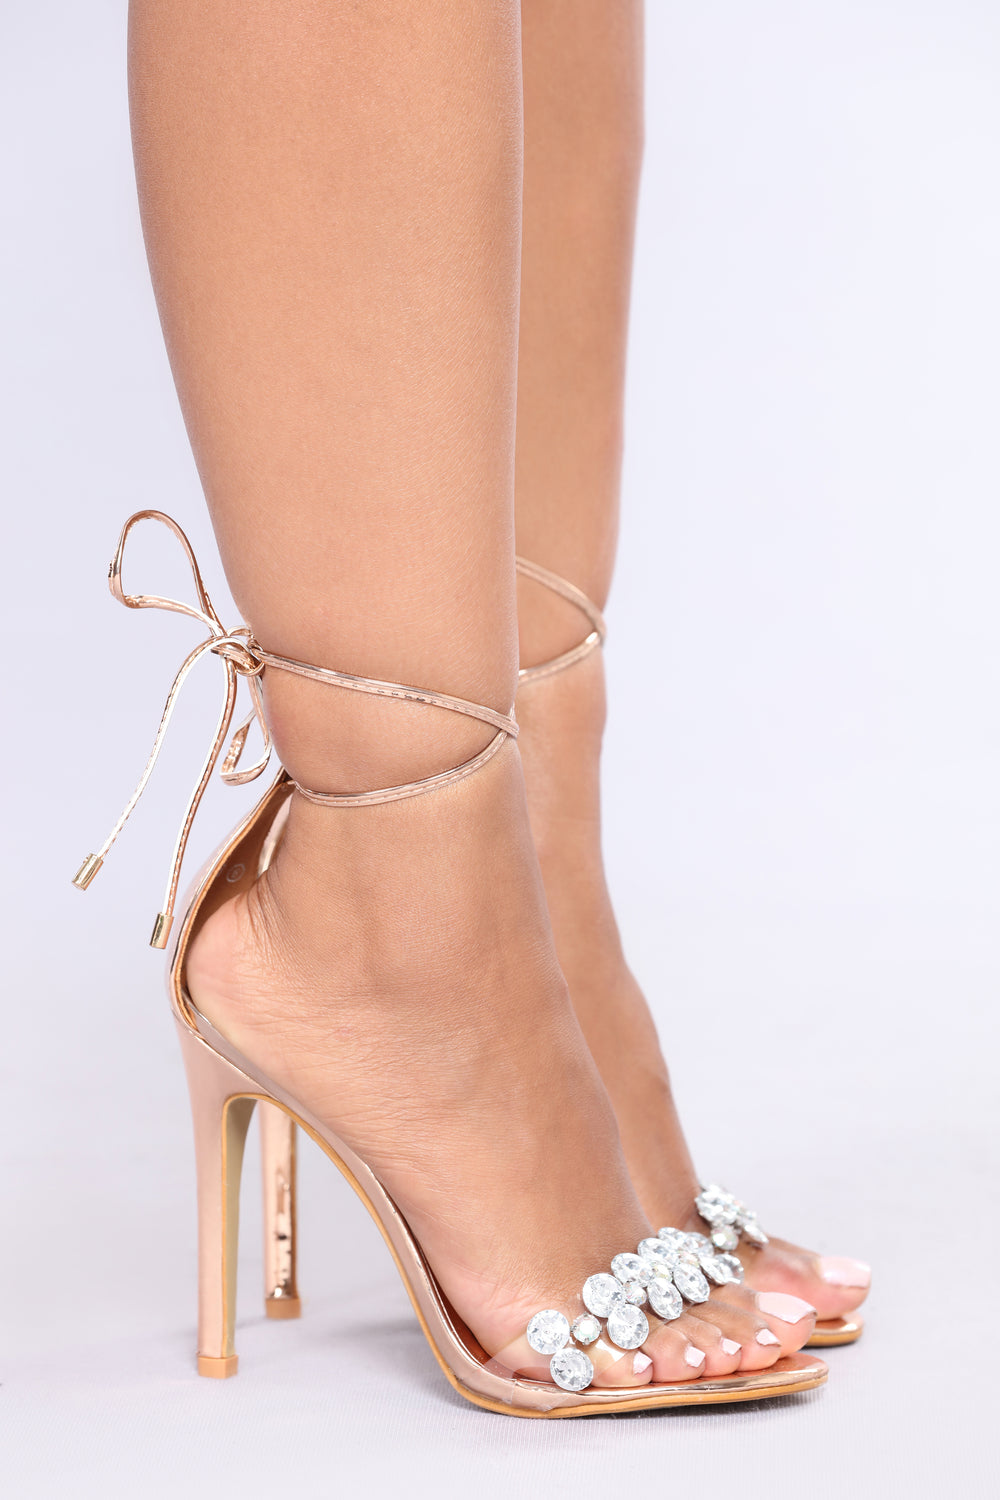 Crystal Clear Heel - Rose Gold